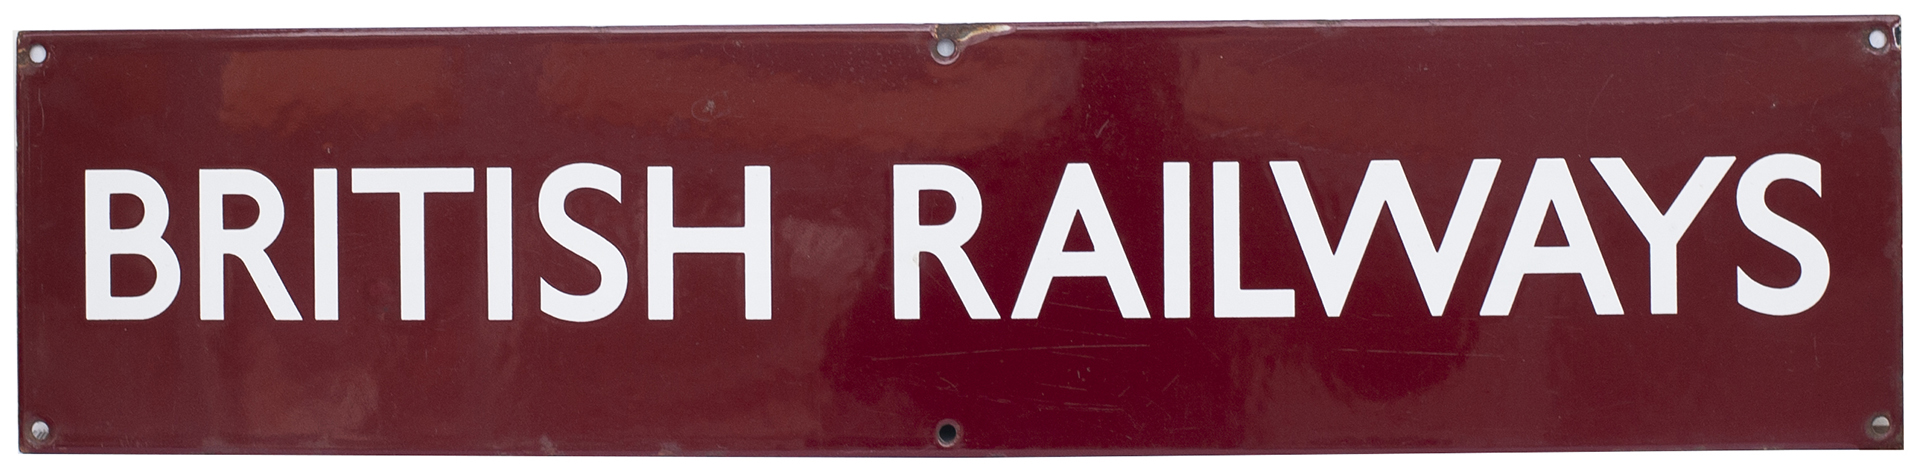 BR(M) Double Royal enamel poster board heading BRITISH RAILWAYS. In excellent condition with a